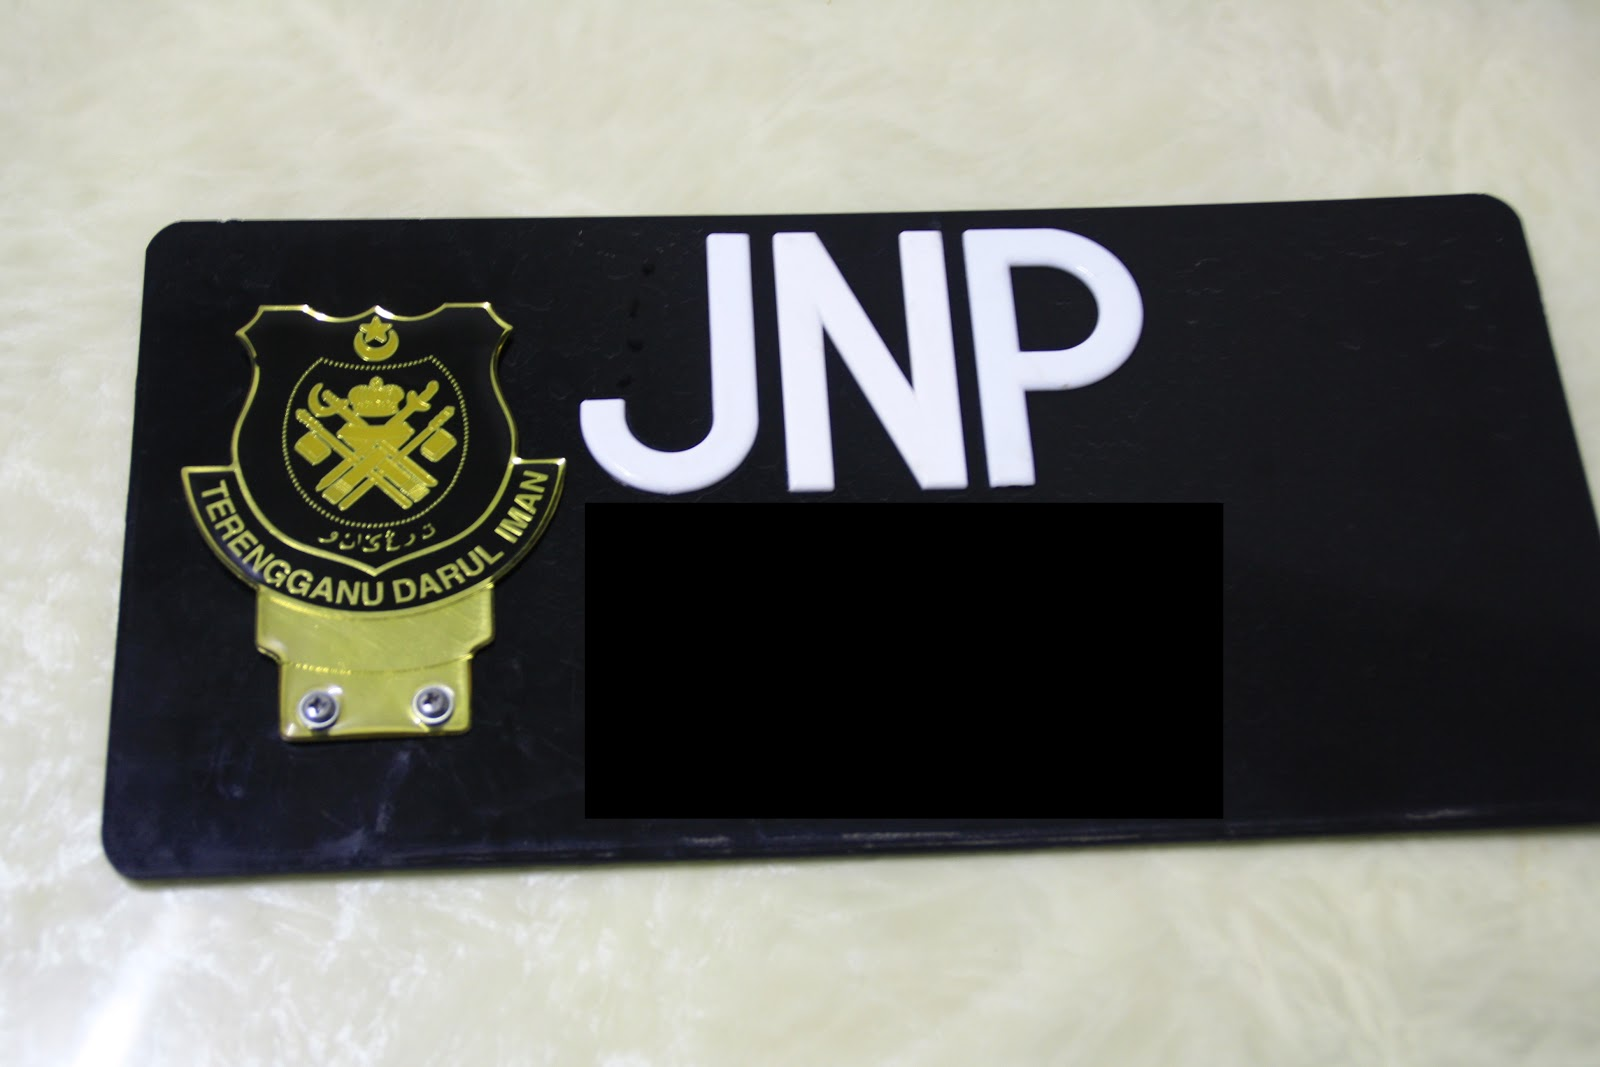 I Bought One About Rm30 At Dengkil Epoxy Type And Gold Color Hehehe Look Like A Good Quality Sort Of State Emblem Vip Hahaha Koya Jadi